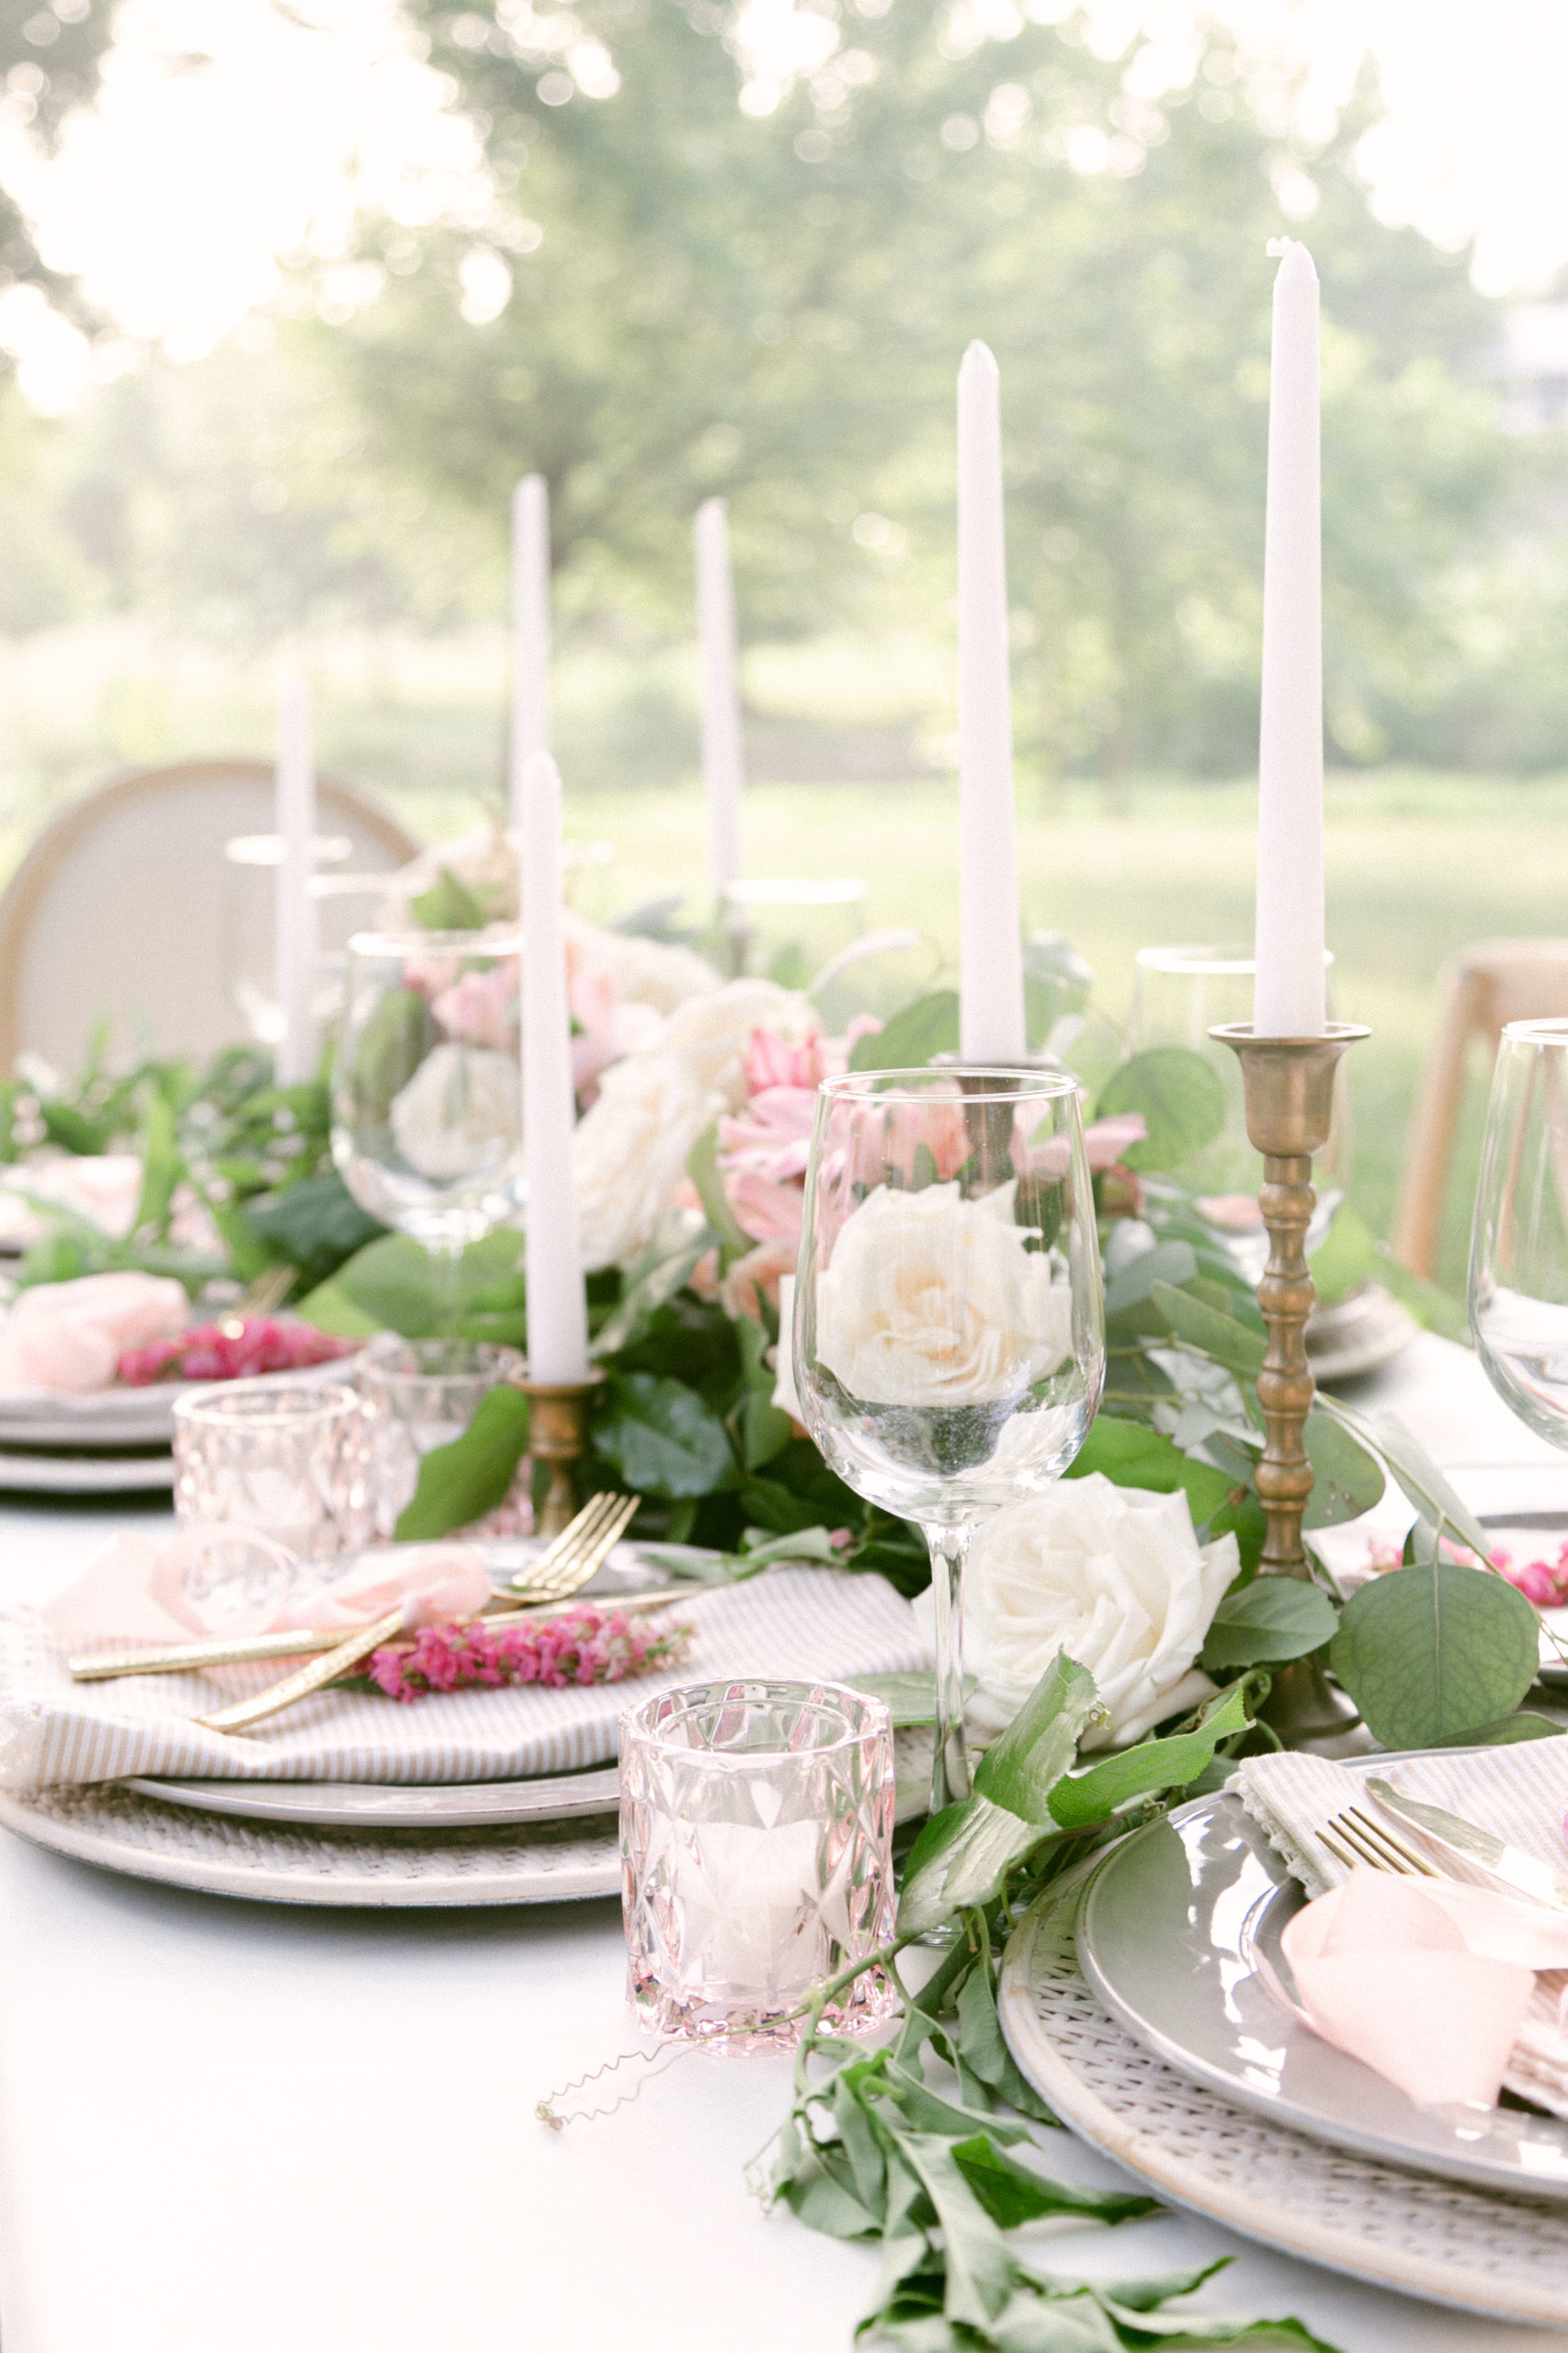 a close of of the outside table, the table is set with flowers and candle sticks